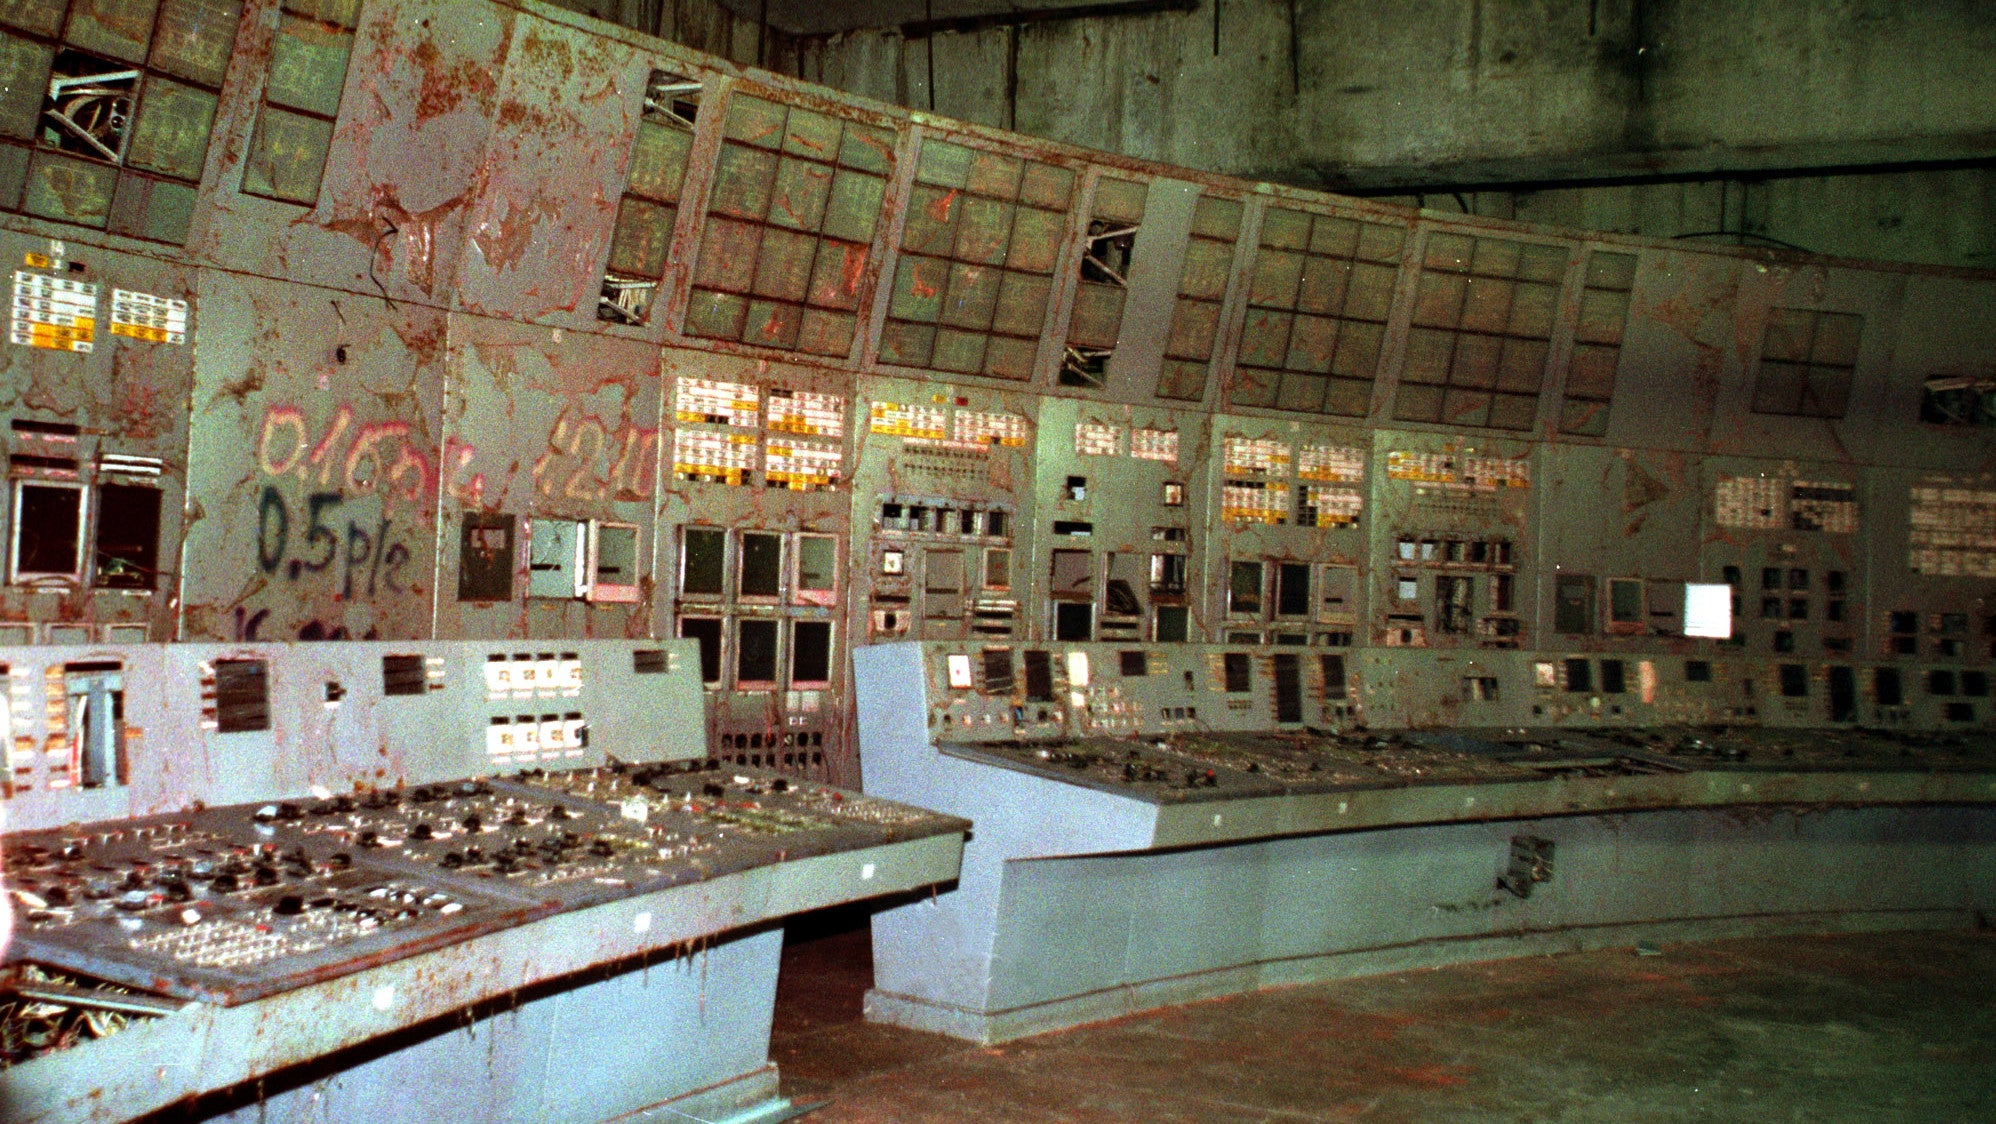 Chernobyl's Infamous Reactor 4 Control Room Is Now Open To Tourists